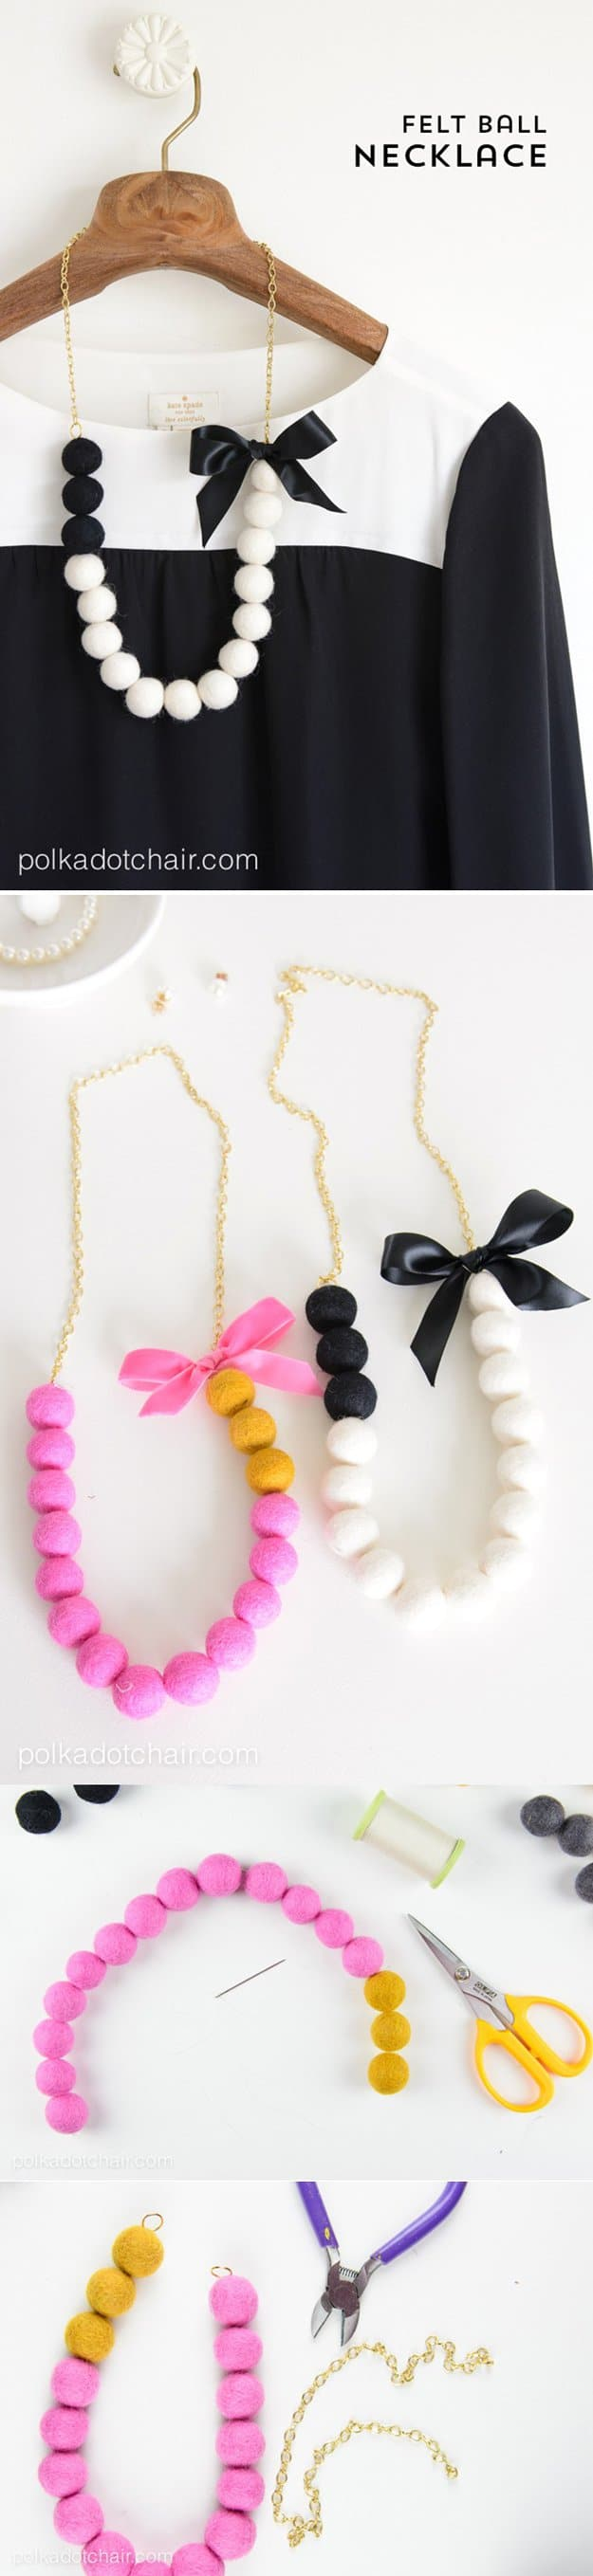 Chain, ribbon, and felt ball necklace